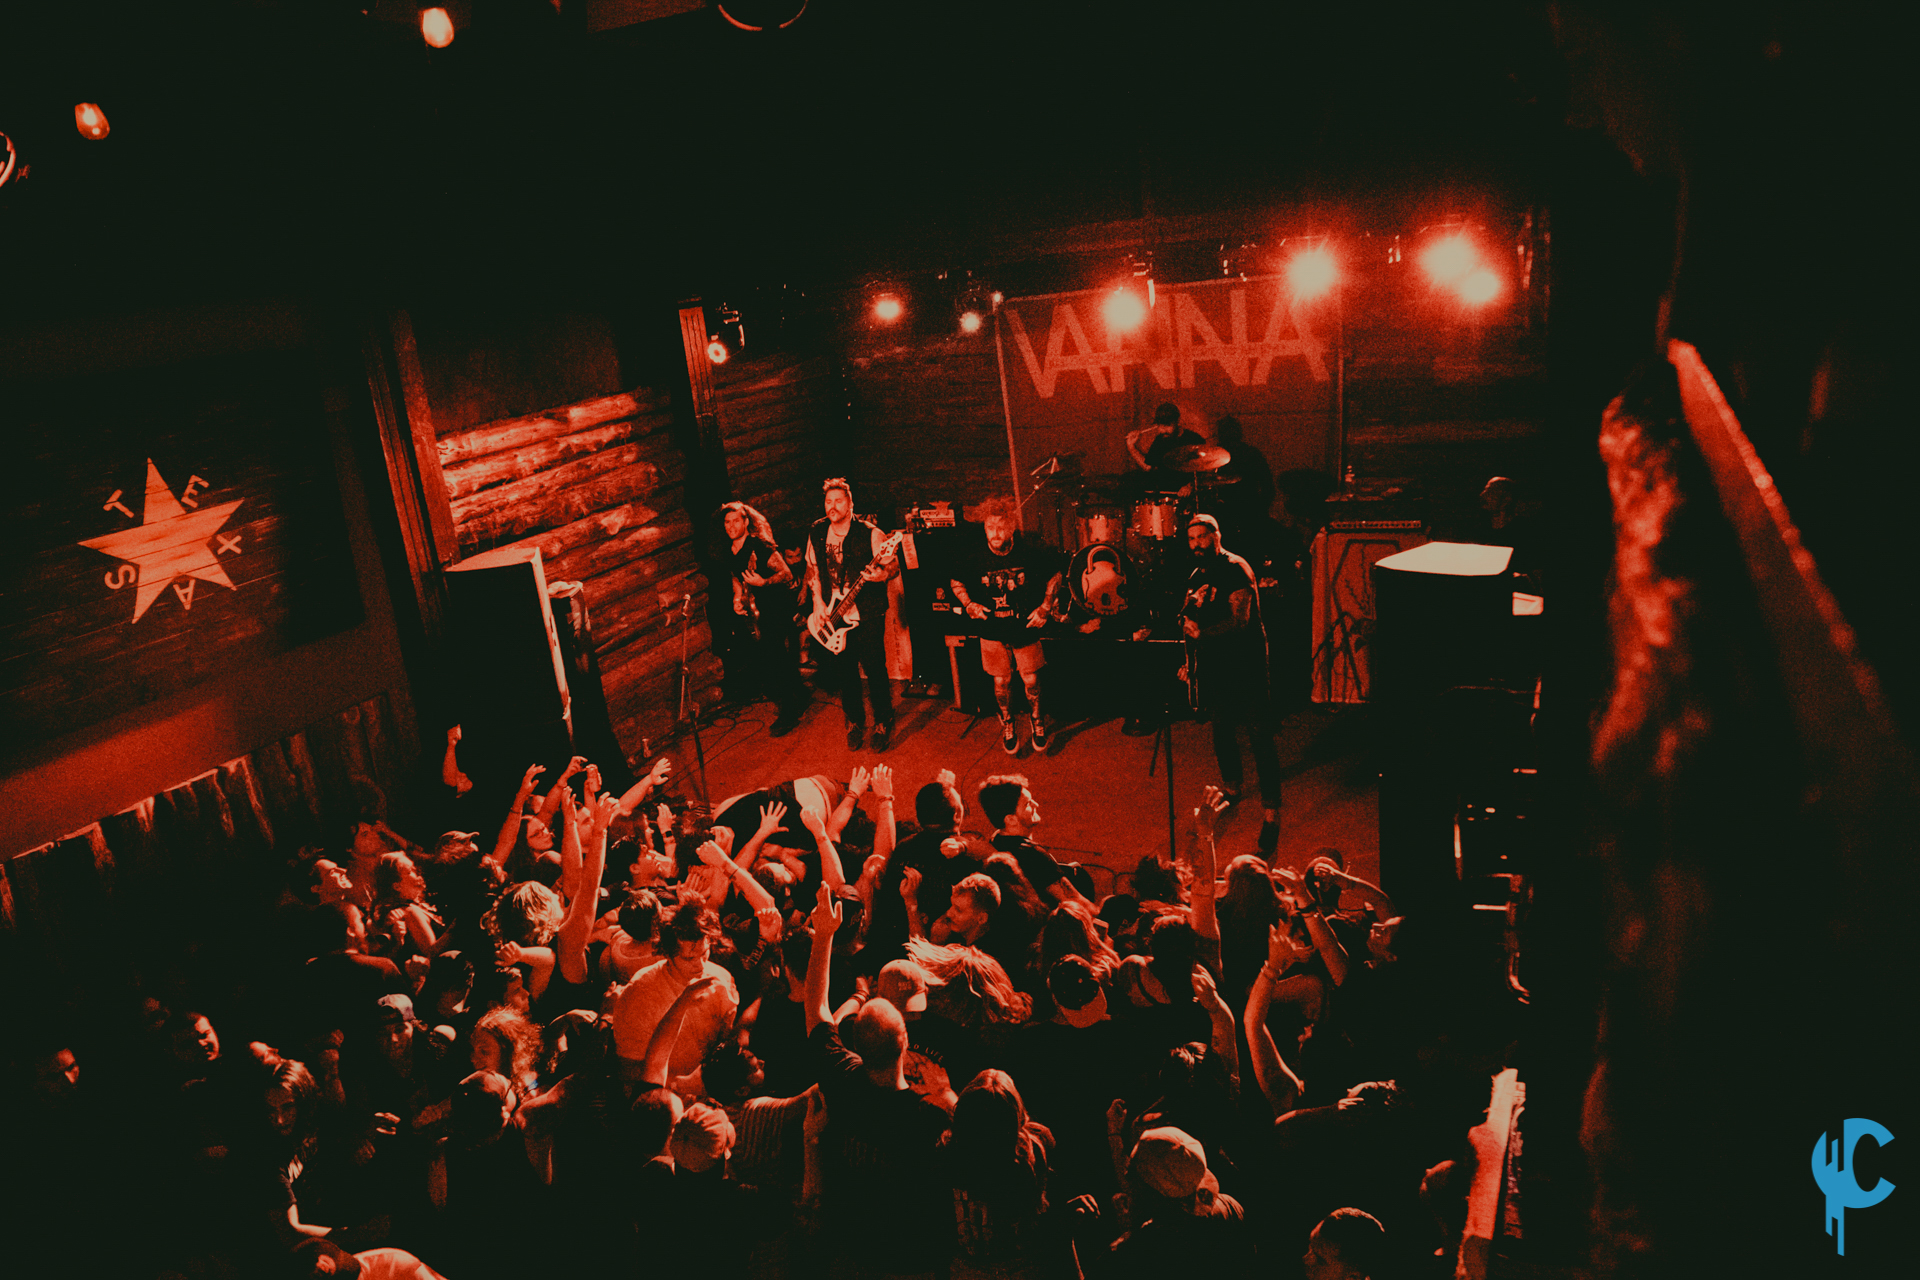 Photos / Review: Vanna says farewell to Austin, Texas ...